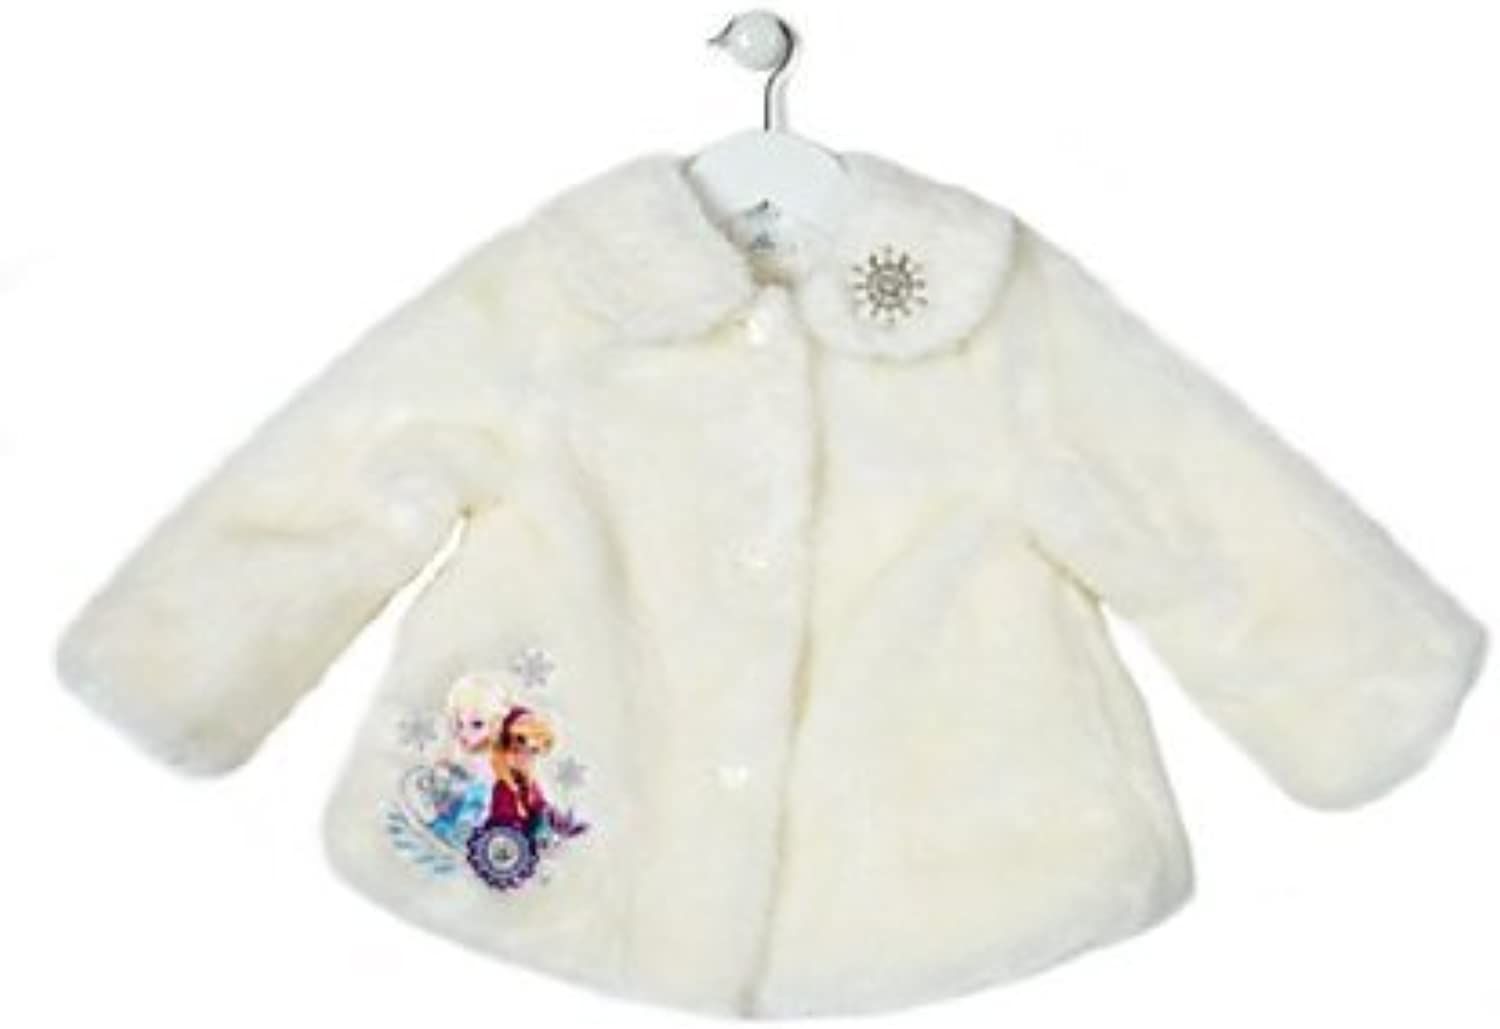 Frozen Winter Jacket For Kids, with an Anna and Elsa appliqué with embroidery (78 years)